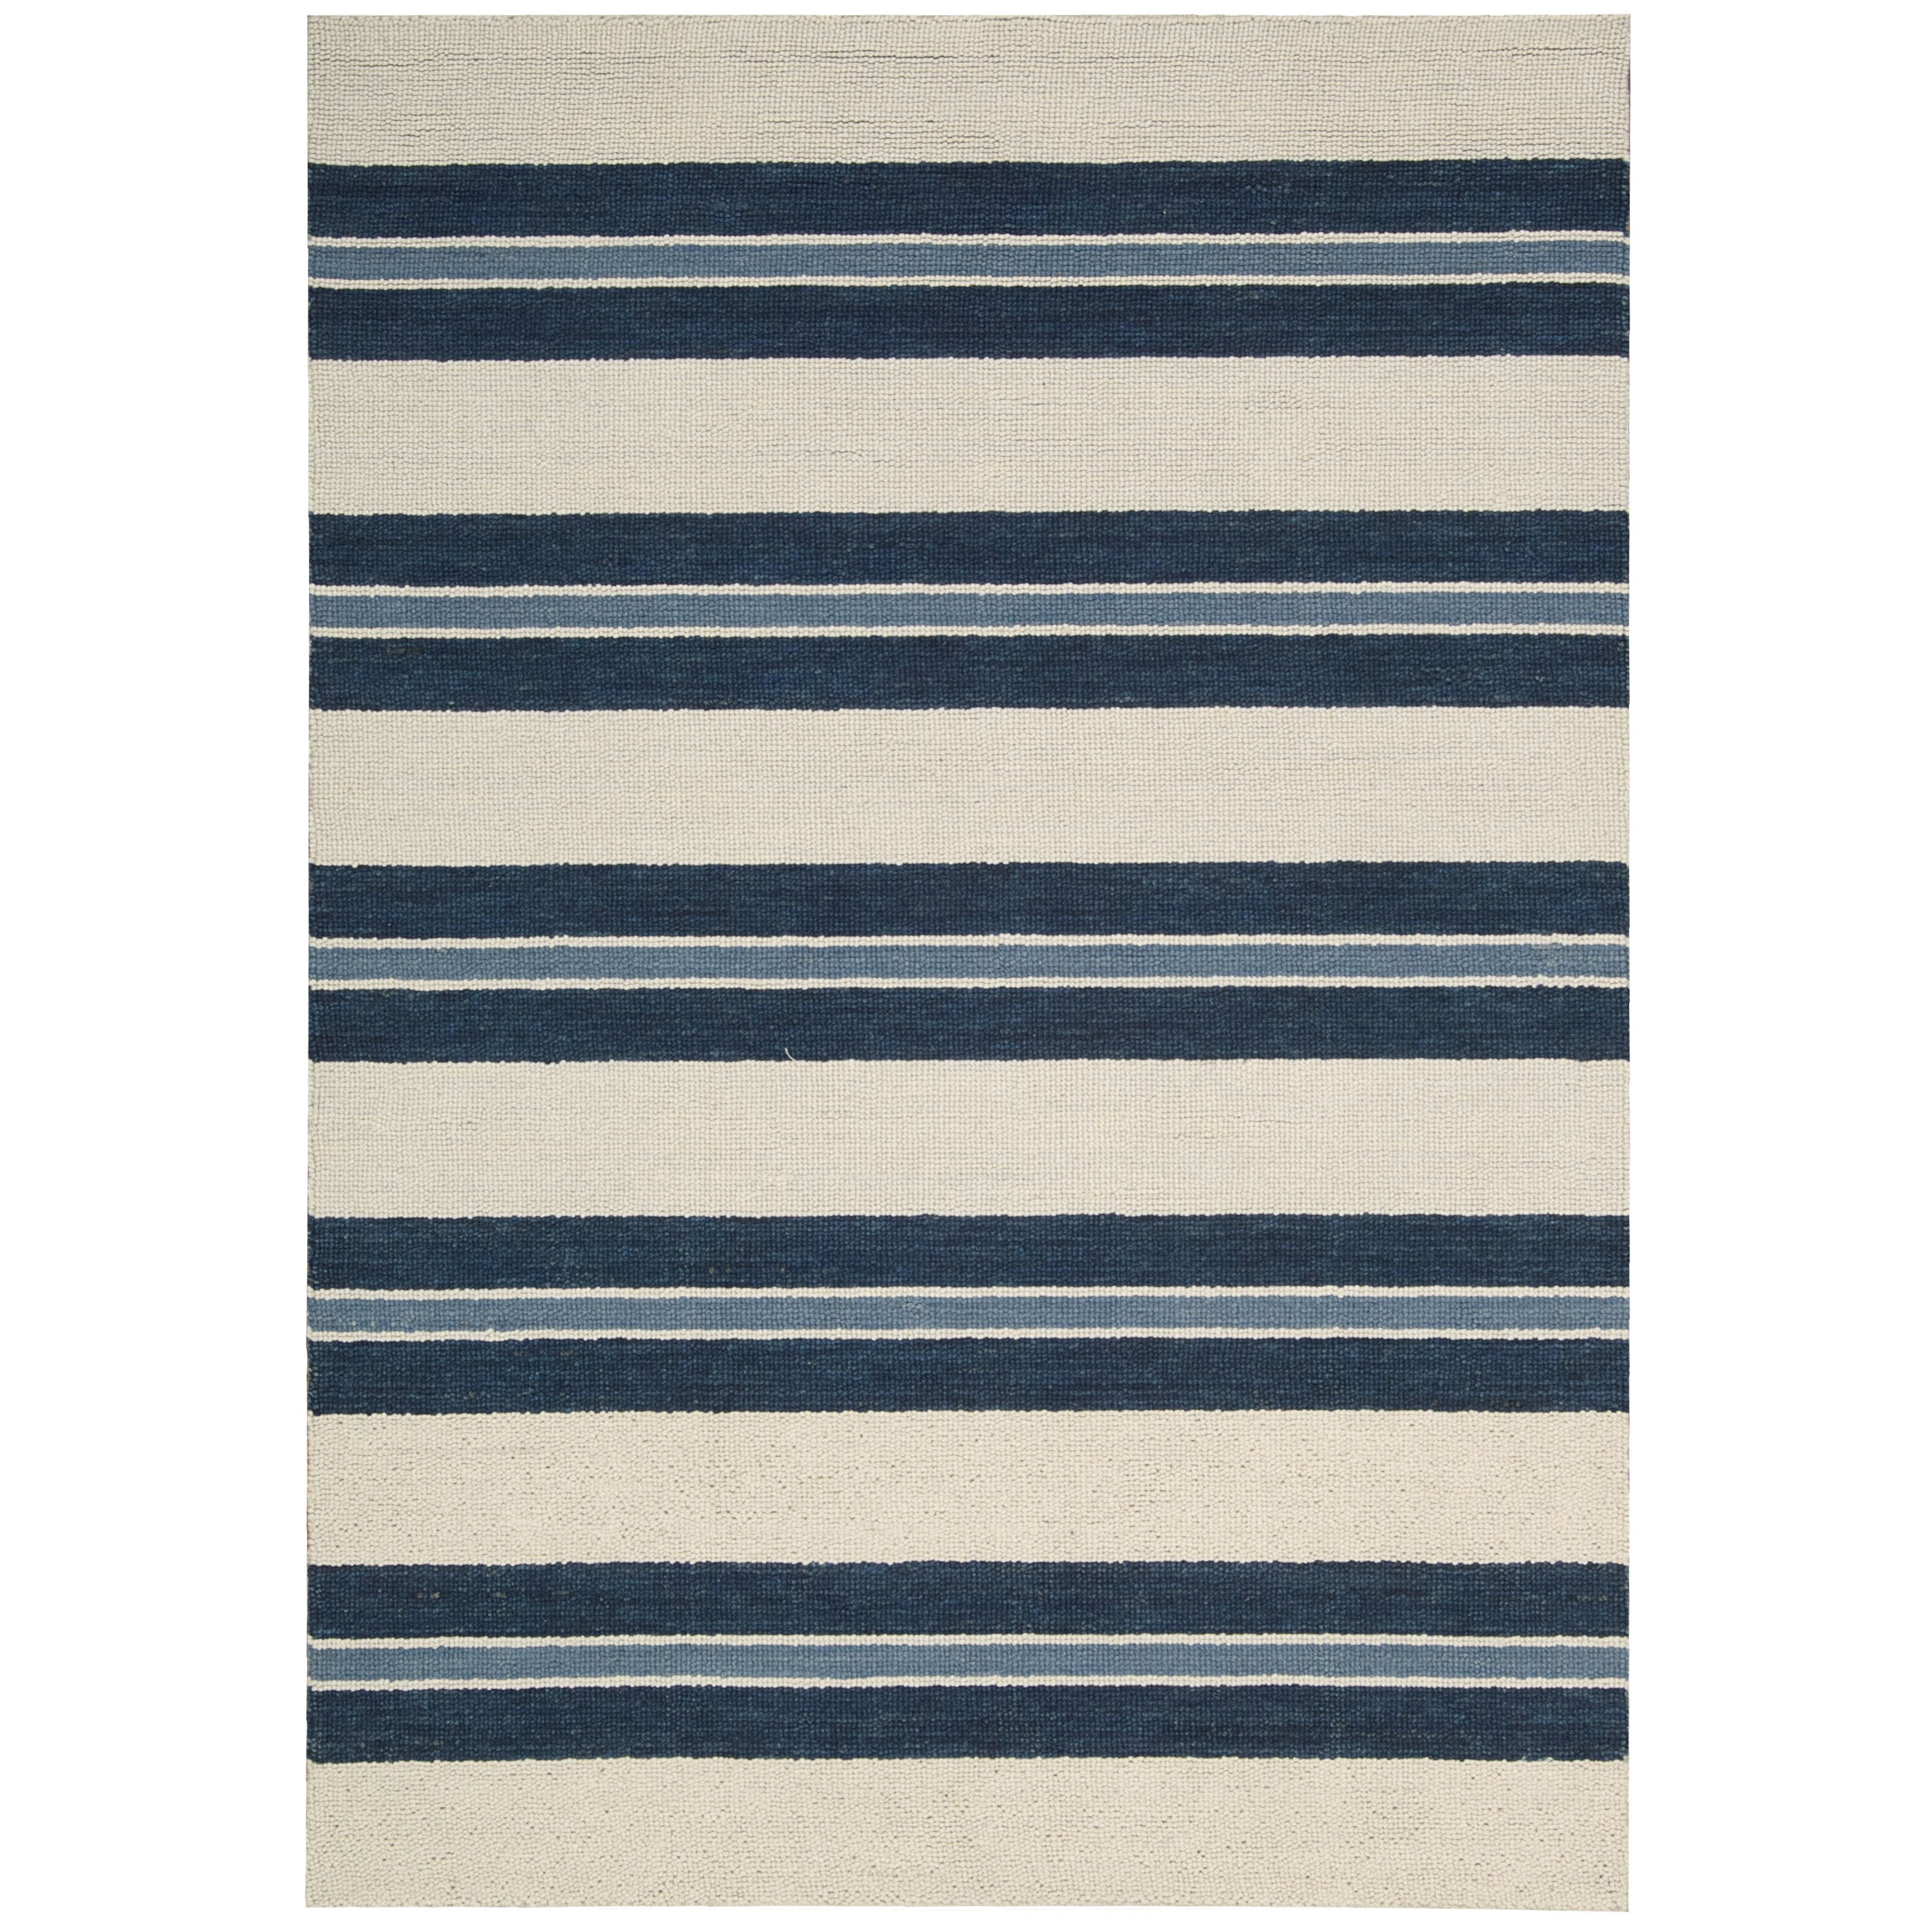 Awesome Barclay Butera Lifestyle Oxford Navy/Ivory Awning Stripe Area Rug